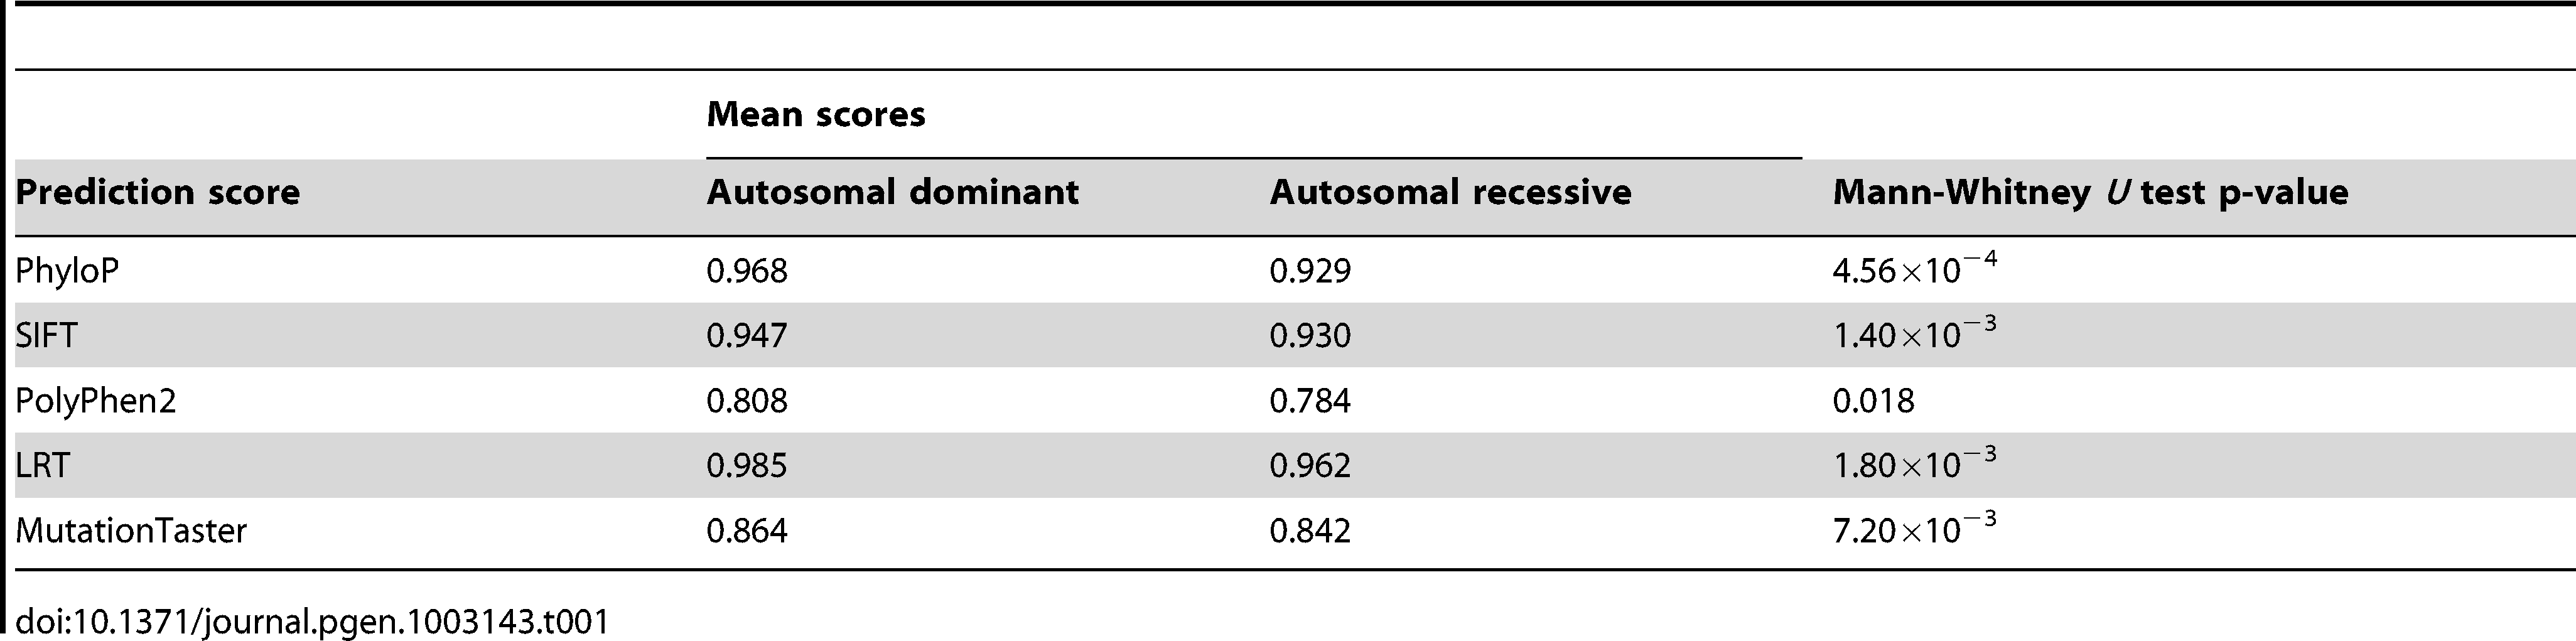 Mann–Whitney <i>U</i> test <i>p</i> values for the difference in prediction scores between autosomal dominant and autosomal recessive disease-causing mutations.